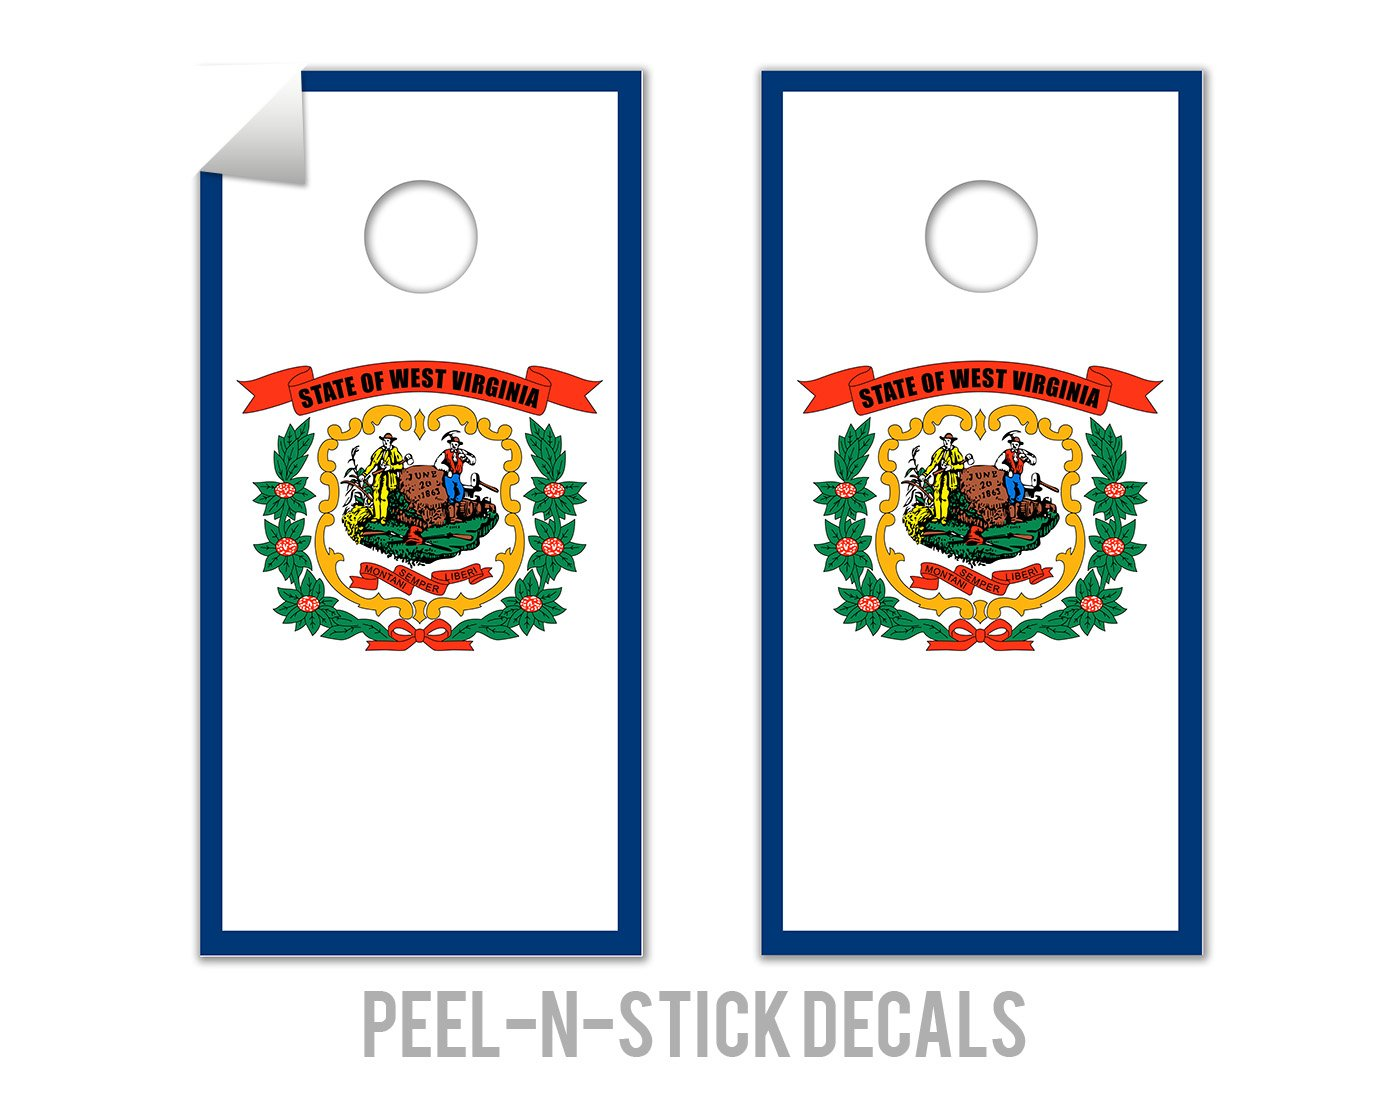 West Virginia State Flag - Cornhole Crew - ACA Regulation Size Cornhole Board Decals by The Cornhole Crew